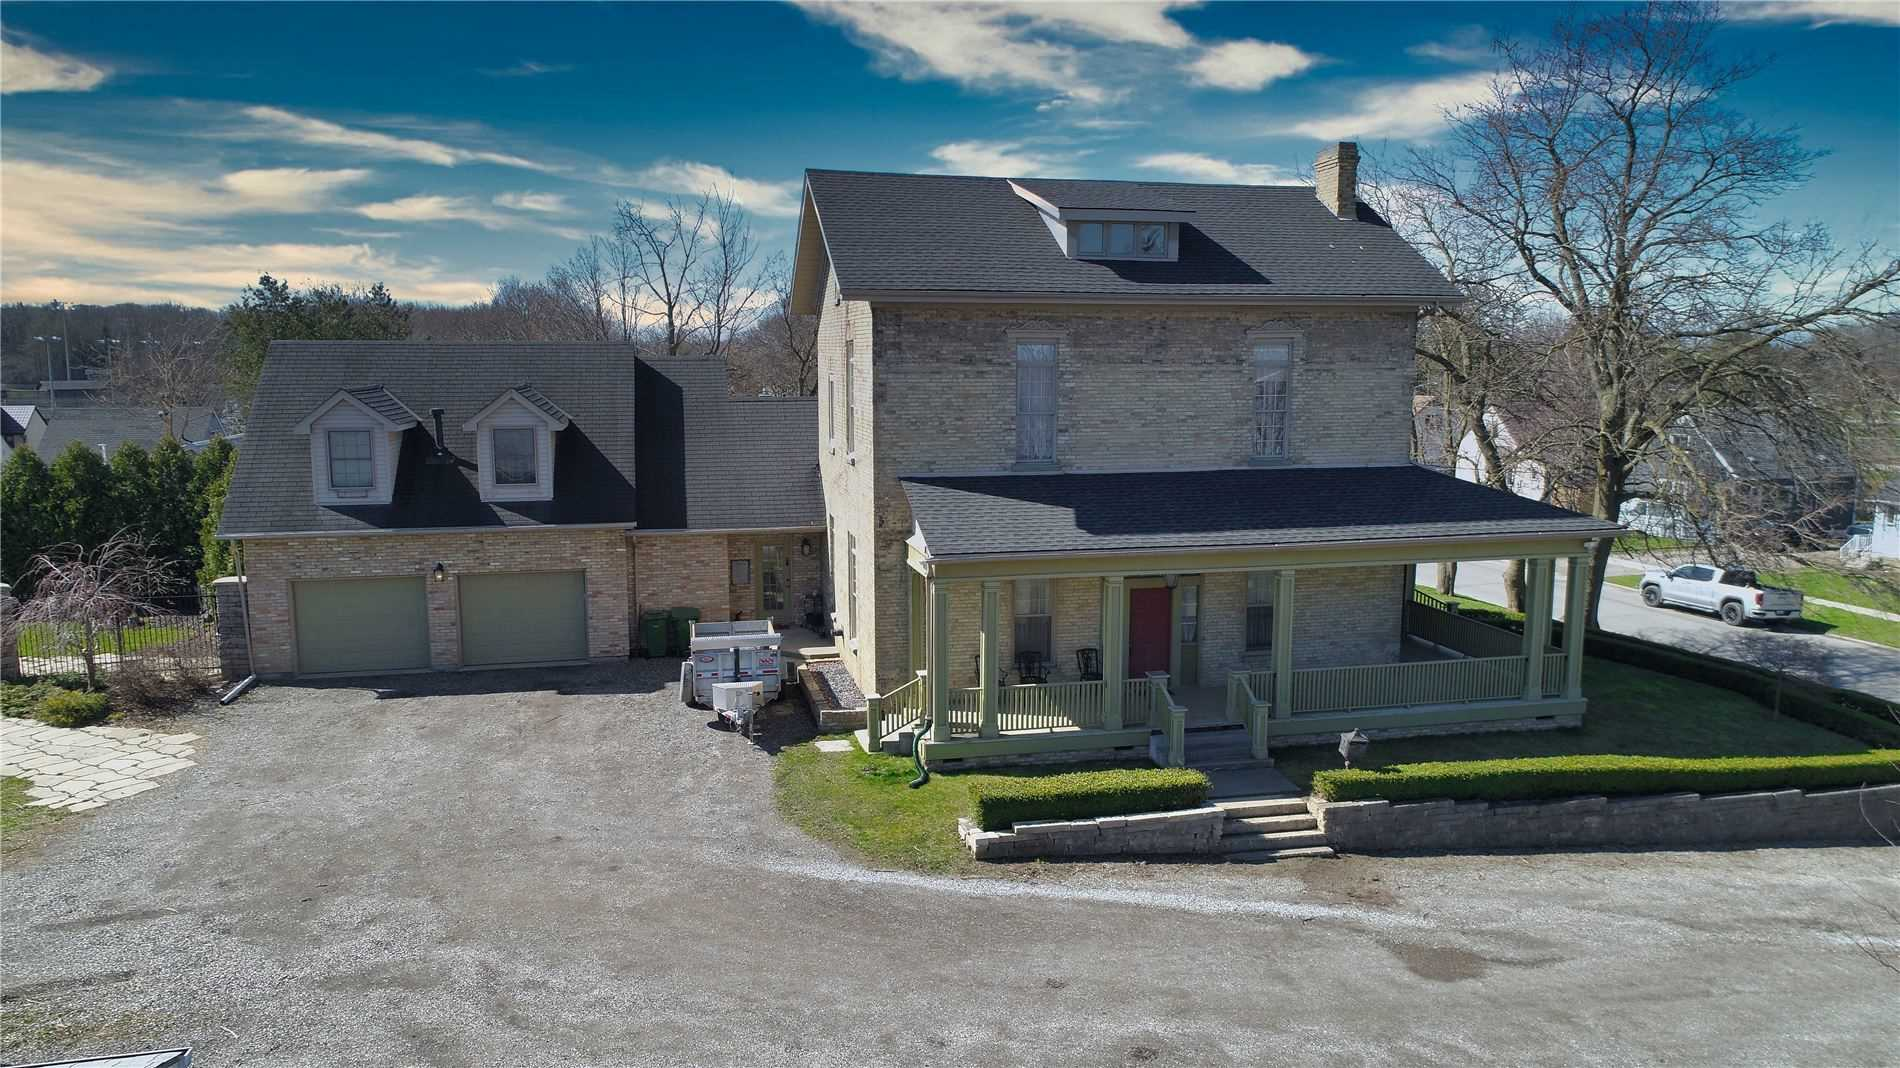 pictures of house for sale MLS: X4750776 located at 21 Parkside Dr, St. Thomas N5R3T8